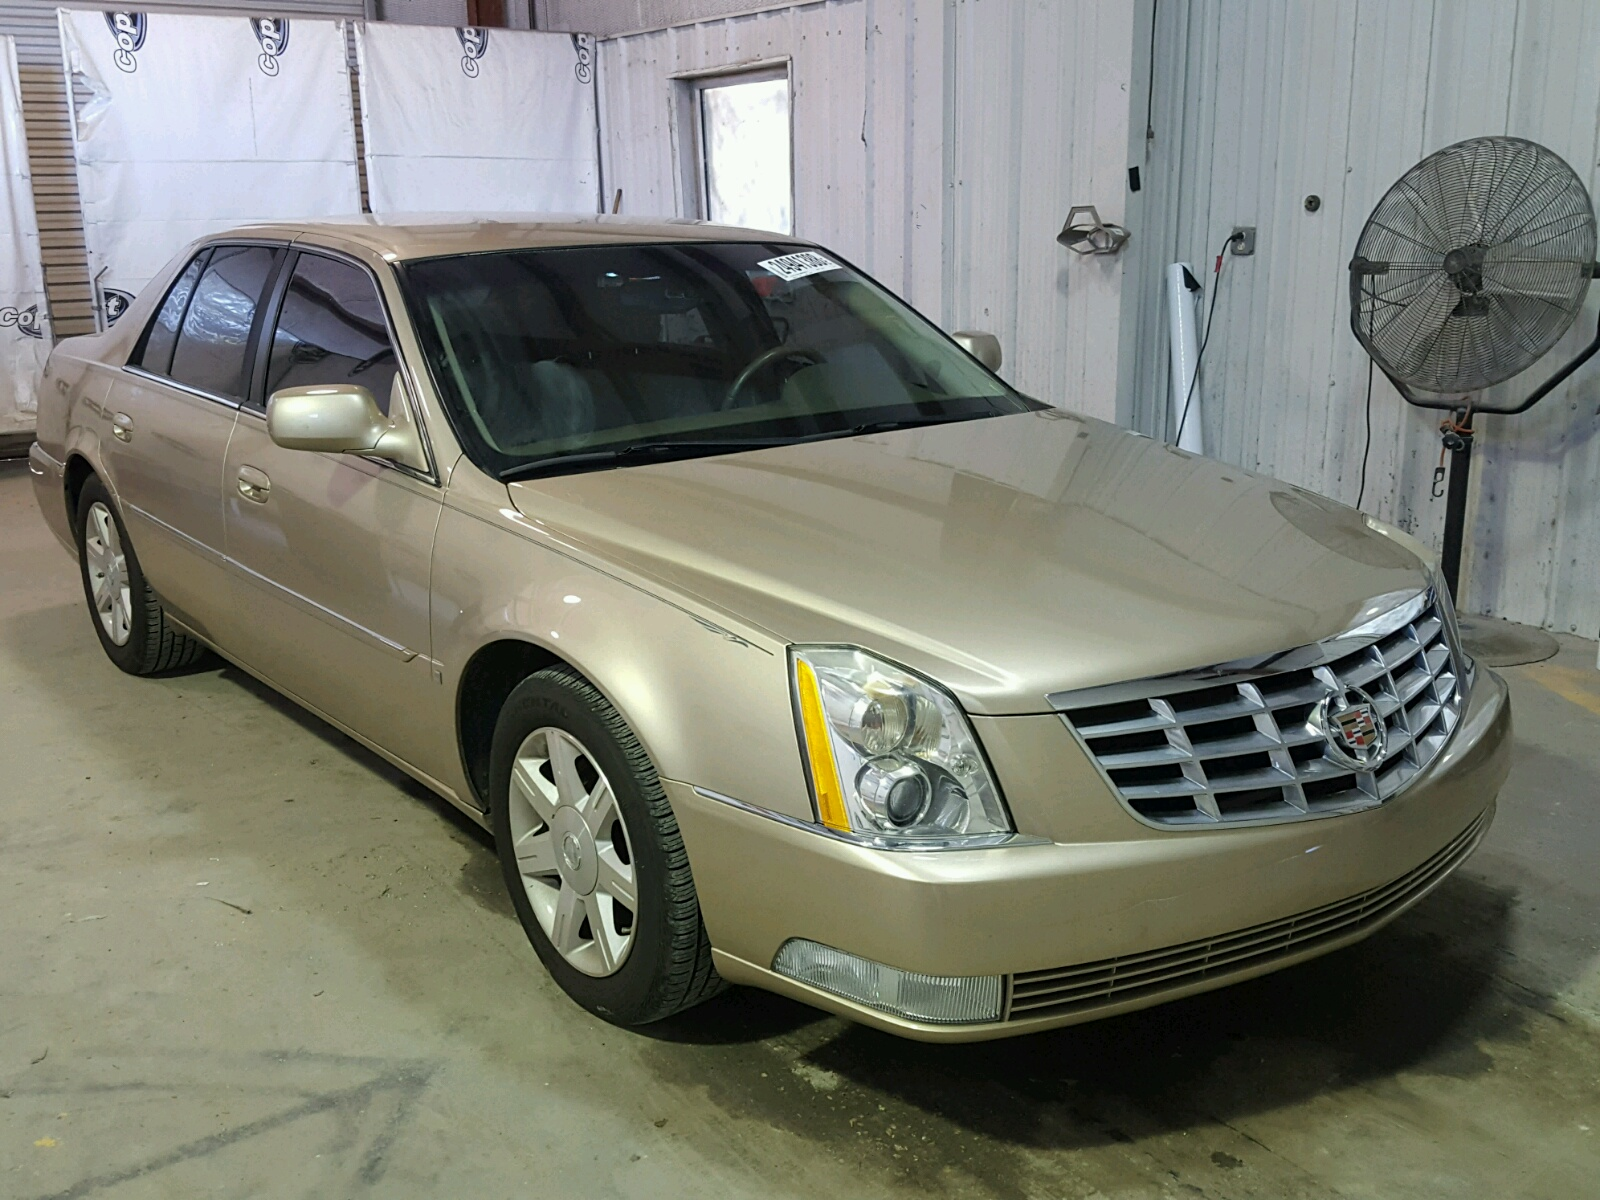 Auto auction ended on vin 1g6kd57y66u105619 2006 cadillac dts in 2006 cadillac dts 46l sciox Gallery